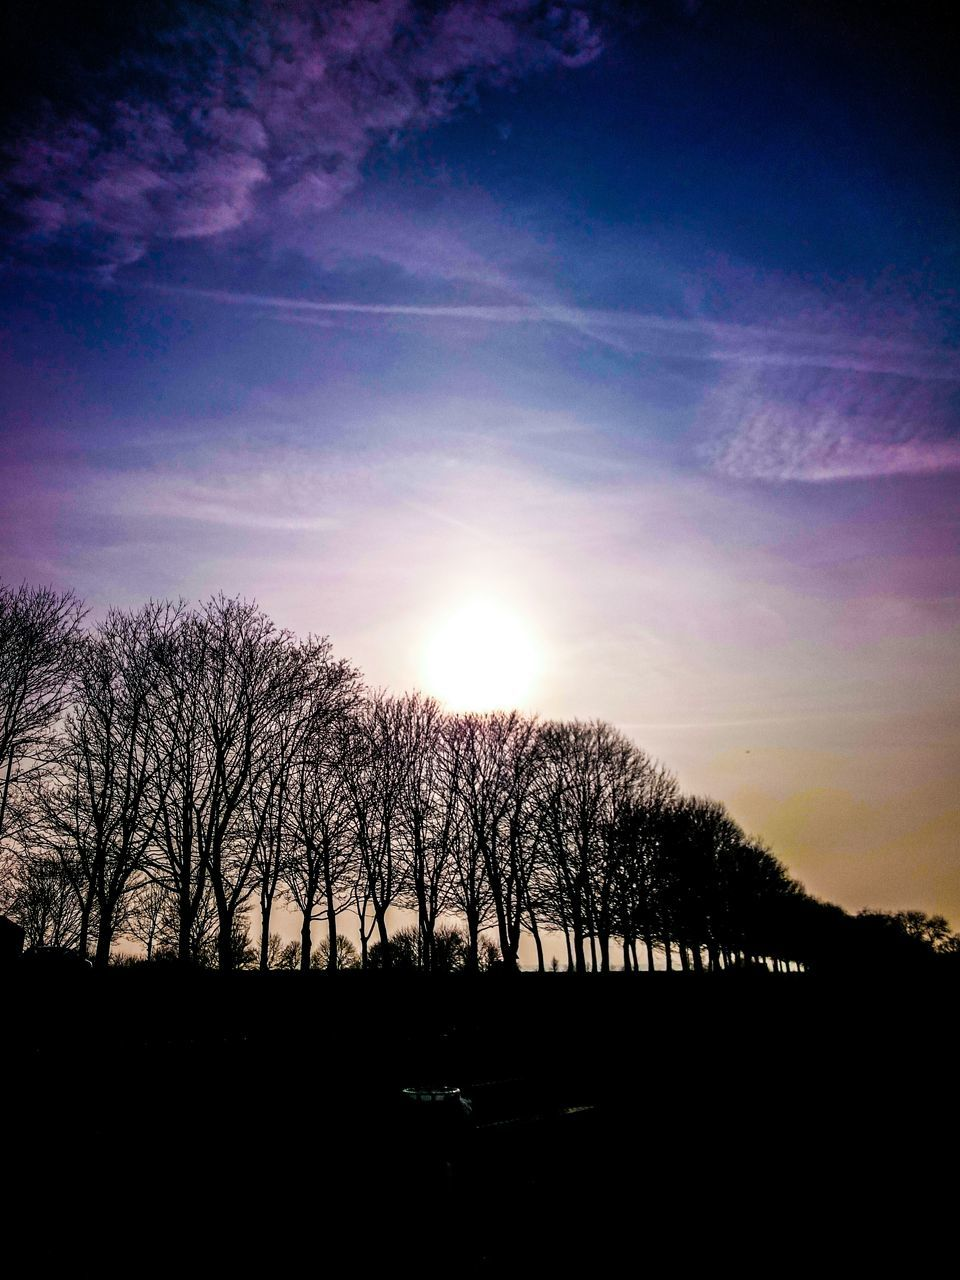 tree, silhouette, sky, sunset, bare tree, sun, nature, beauty in nature, sunlight, tranquil scene, tranquility, outdoors, scenics, no people, landscape, branch, day